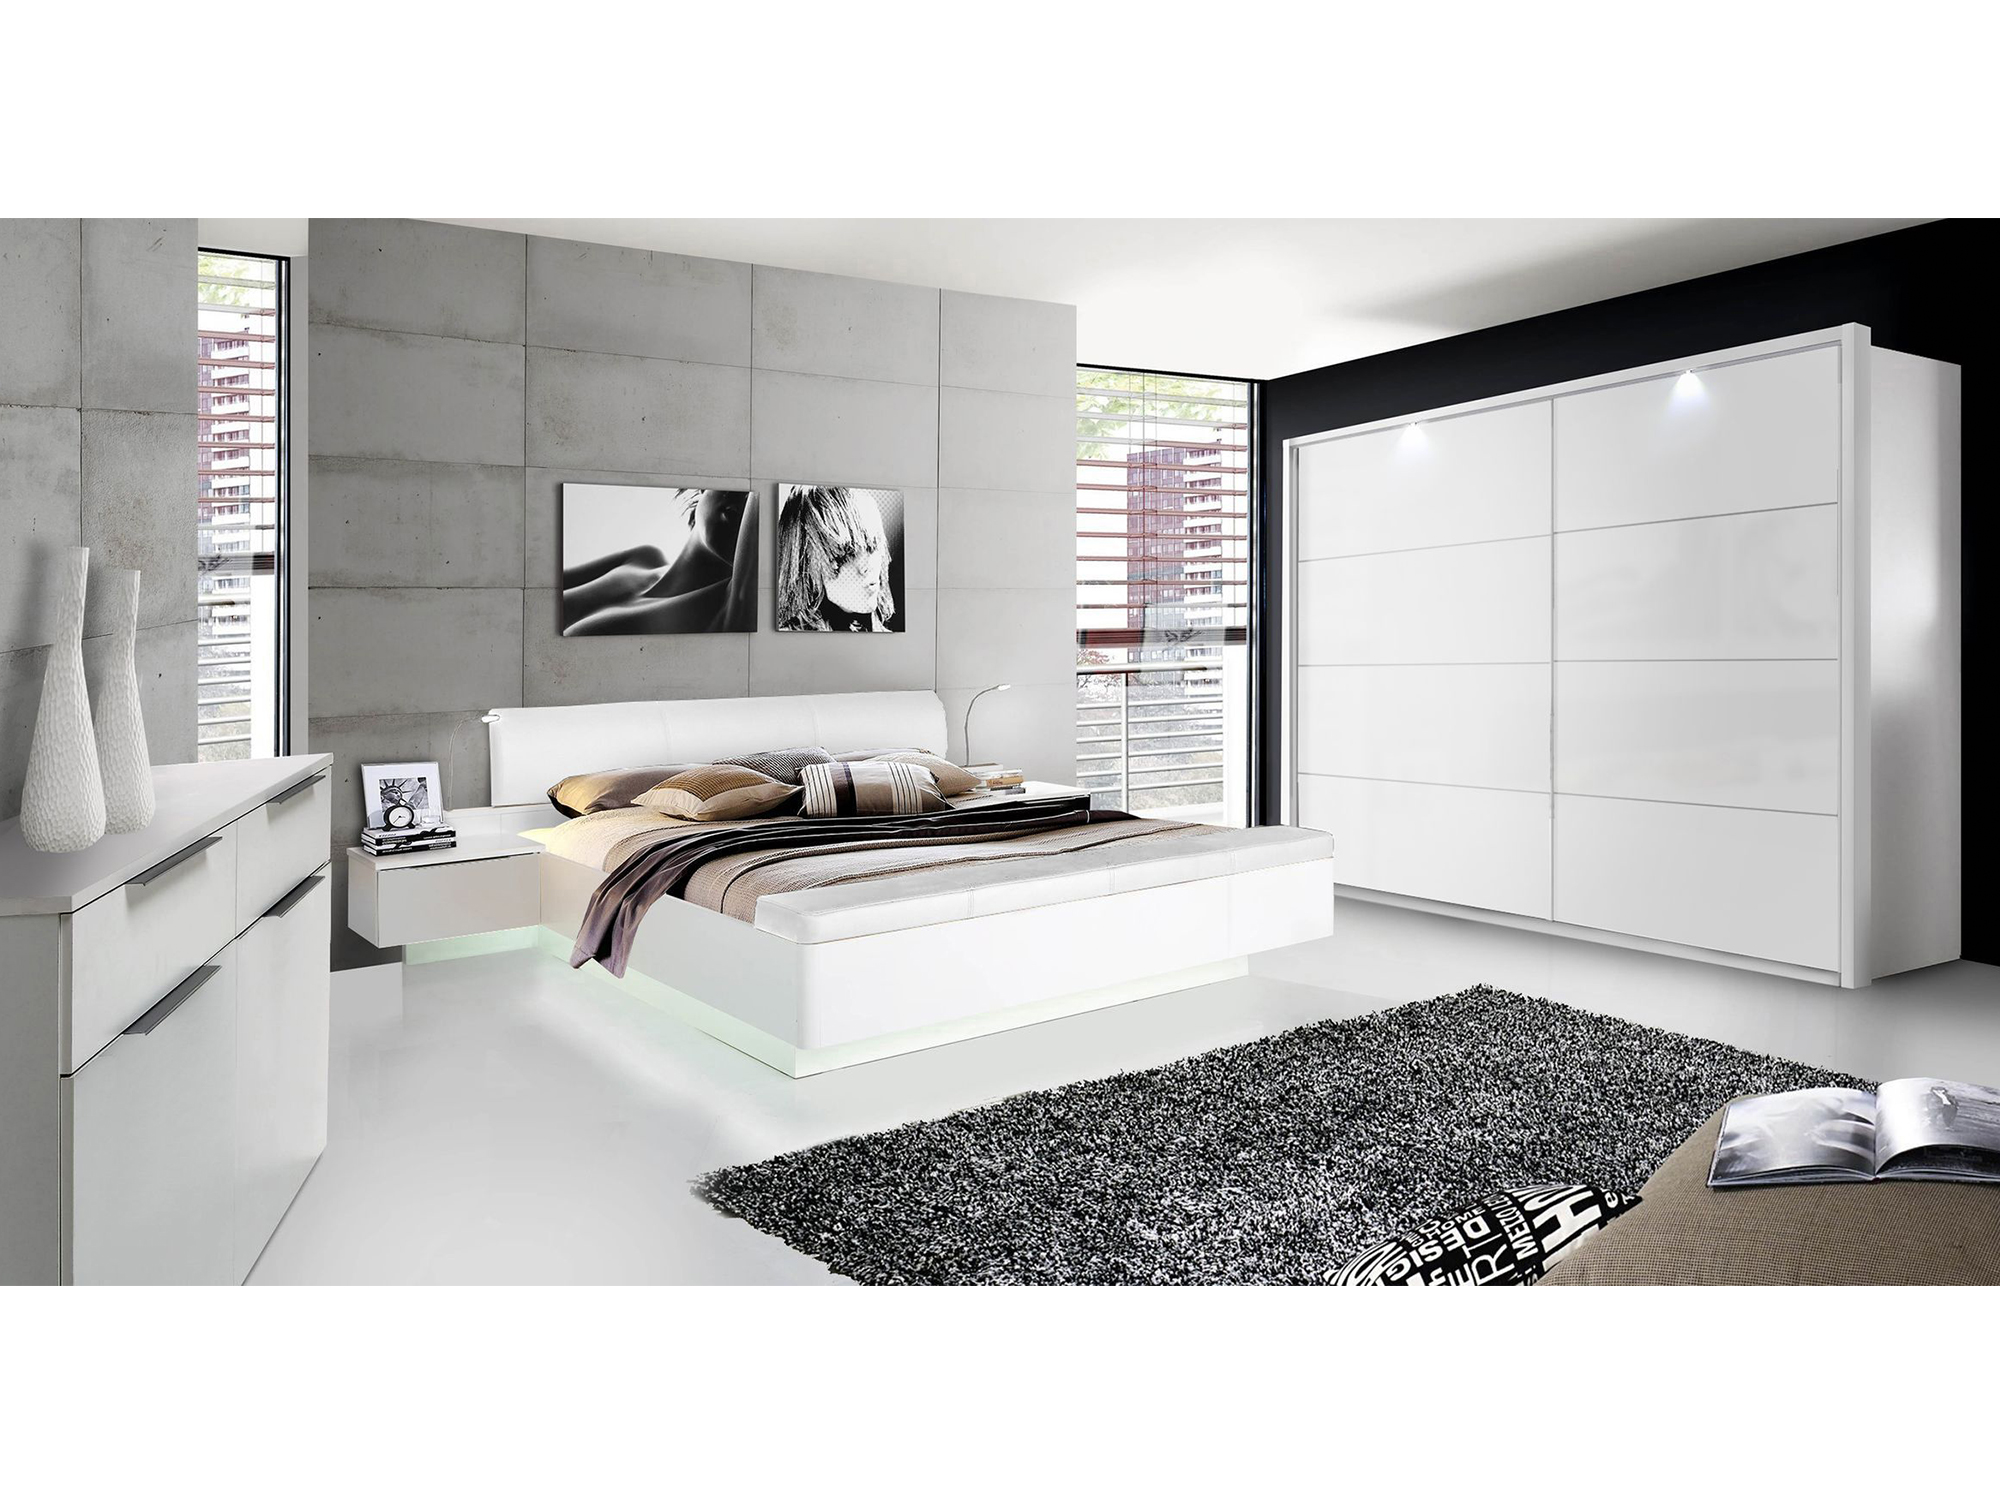 silent schwebet renschrank weiss hochglanz 200 cm. Black Bedroom Furniture Sets. Home Design Ideas